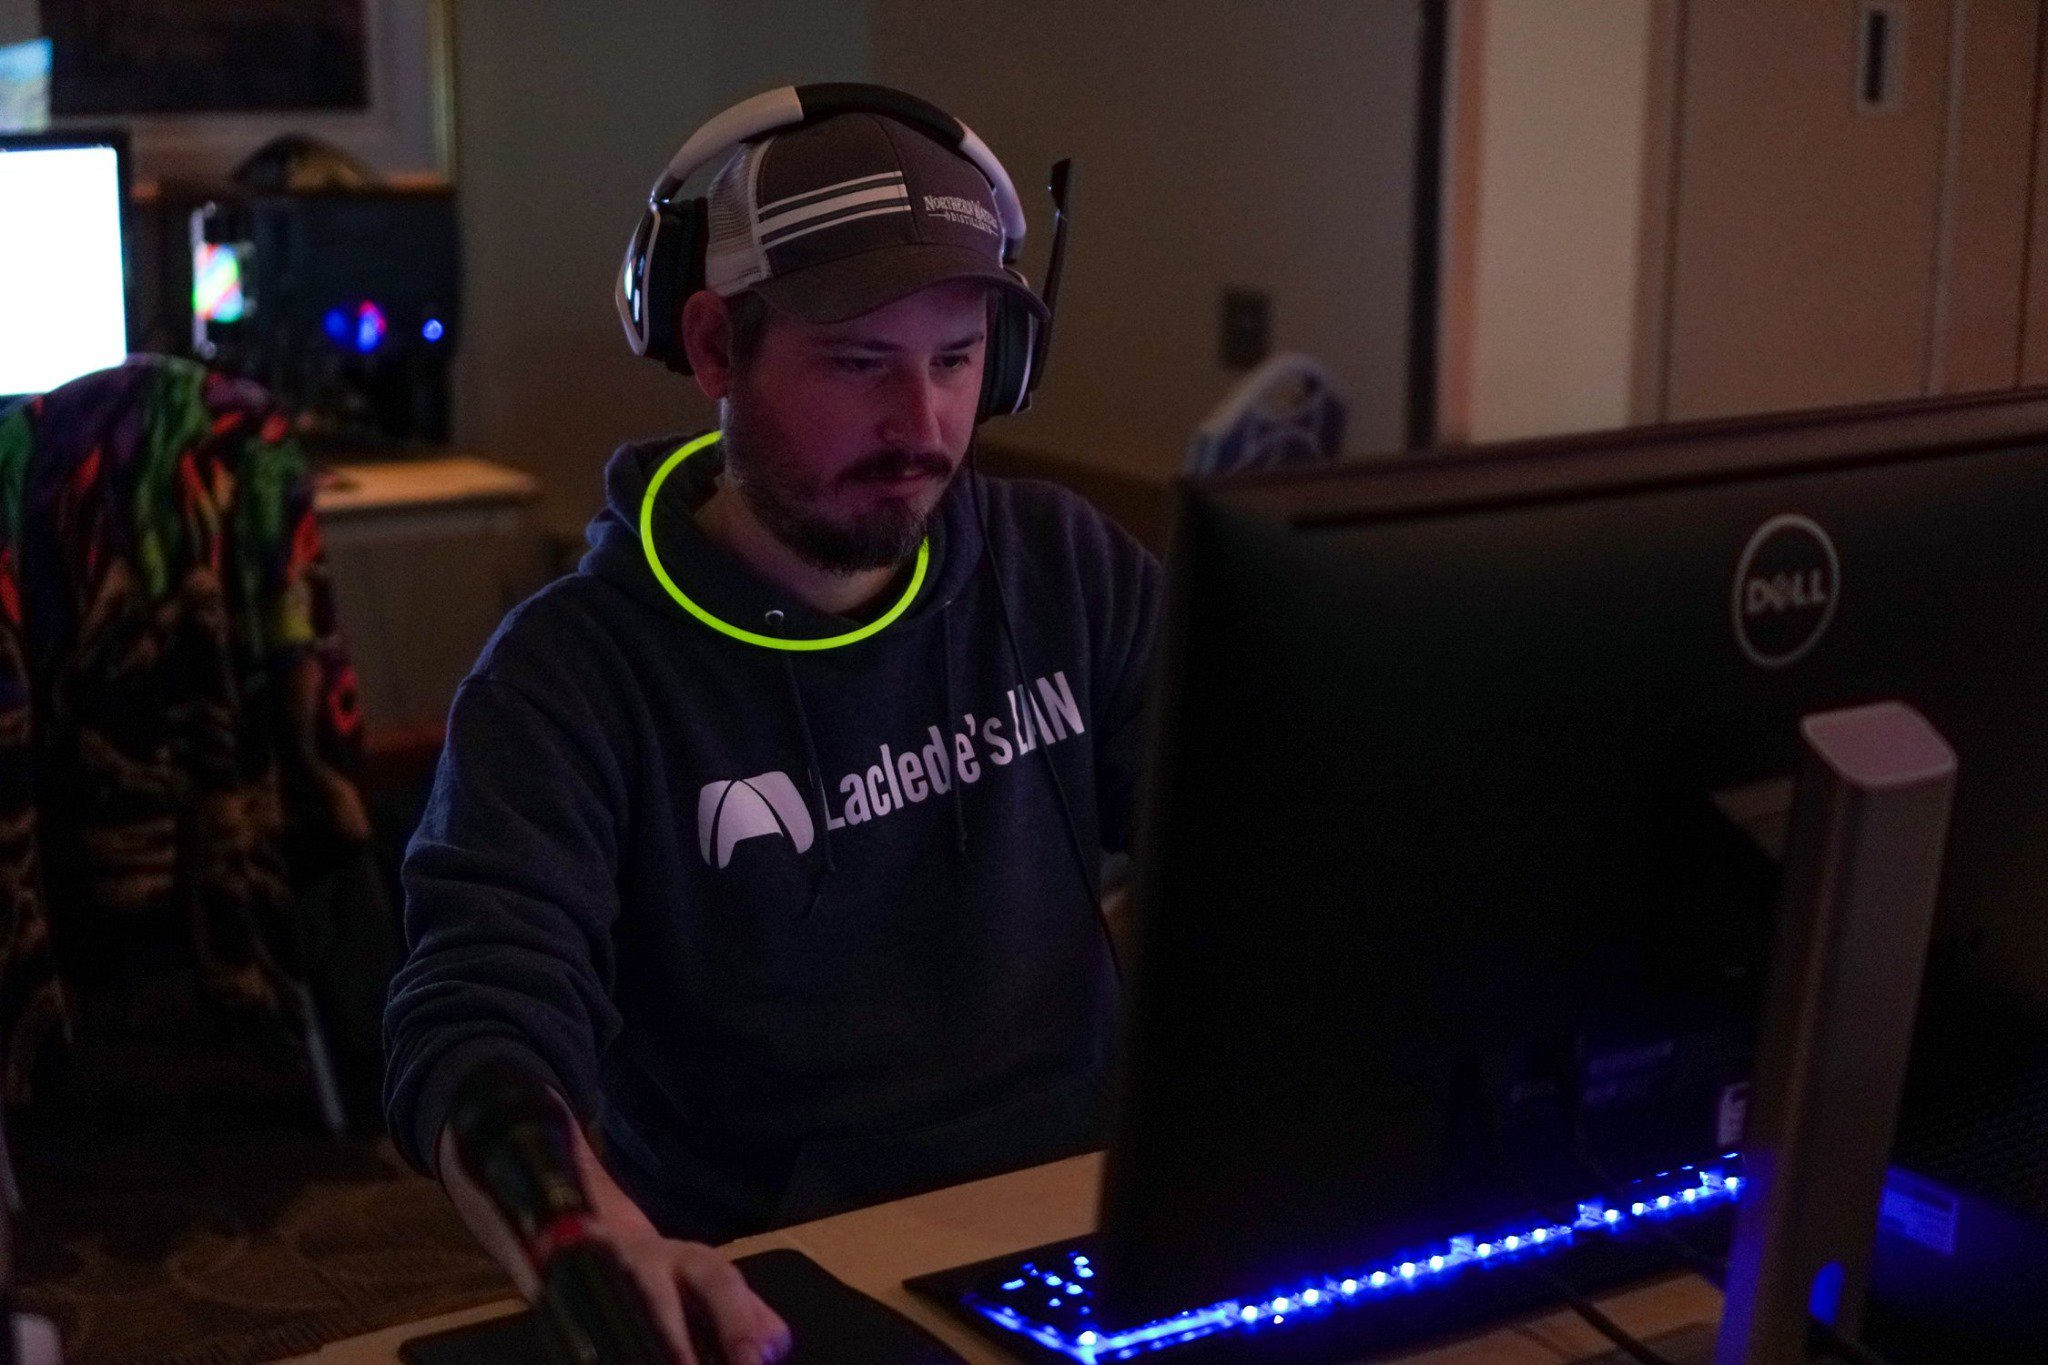 Laclede's LAN Fall 2019 dell